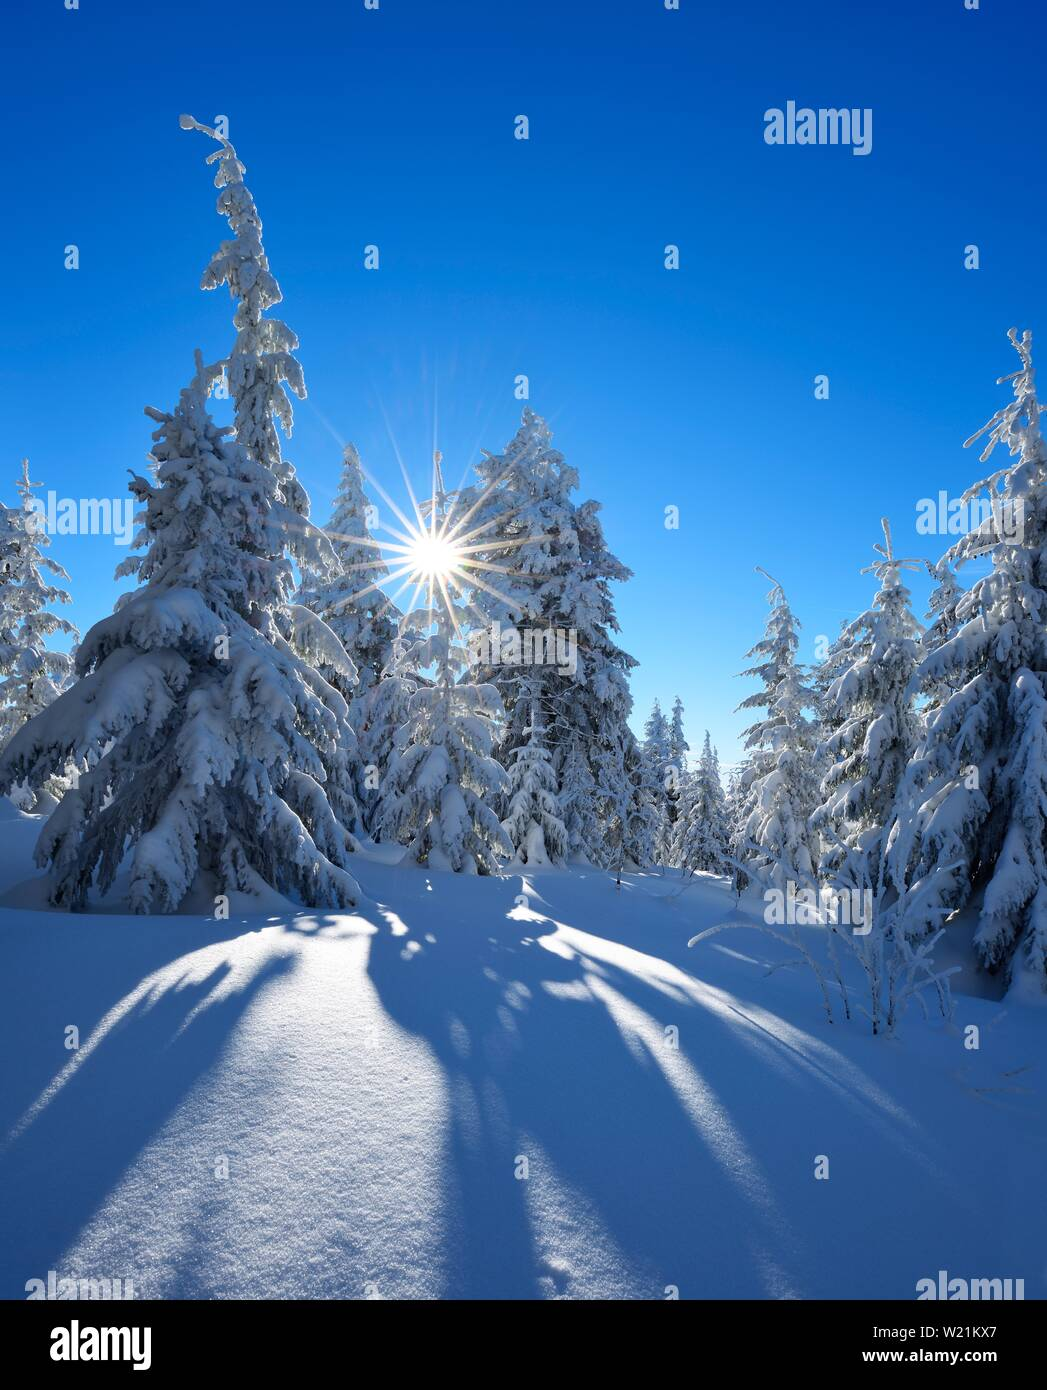 Snow-covered winter landscape at Fichtelberg, spruces covered with snow in bright sunshine, near Oberwiesenthal, Erzgebirge, Saxony, Germany - Stock Image